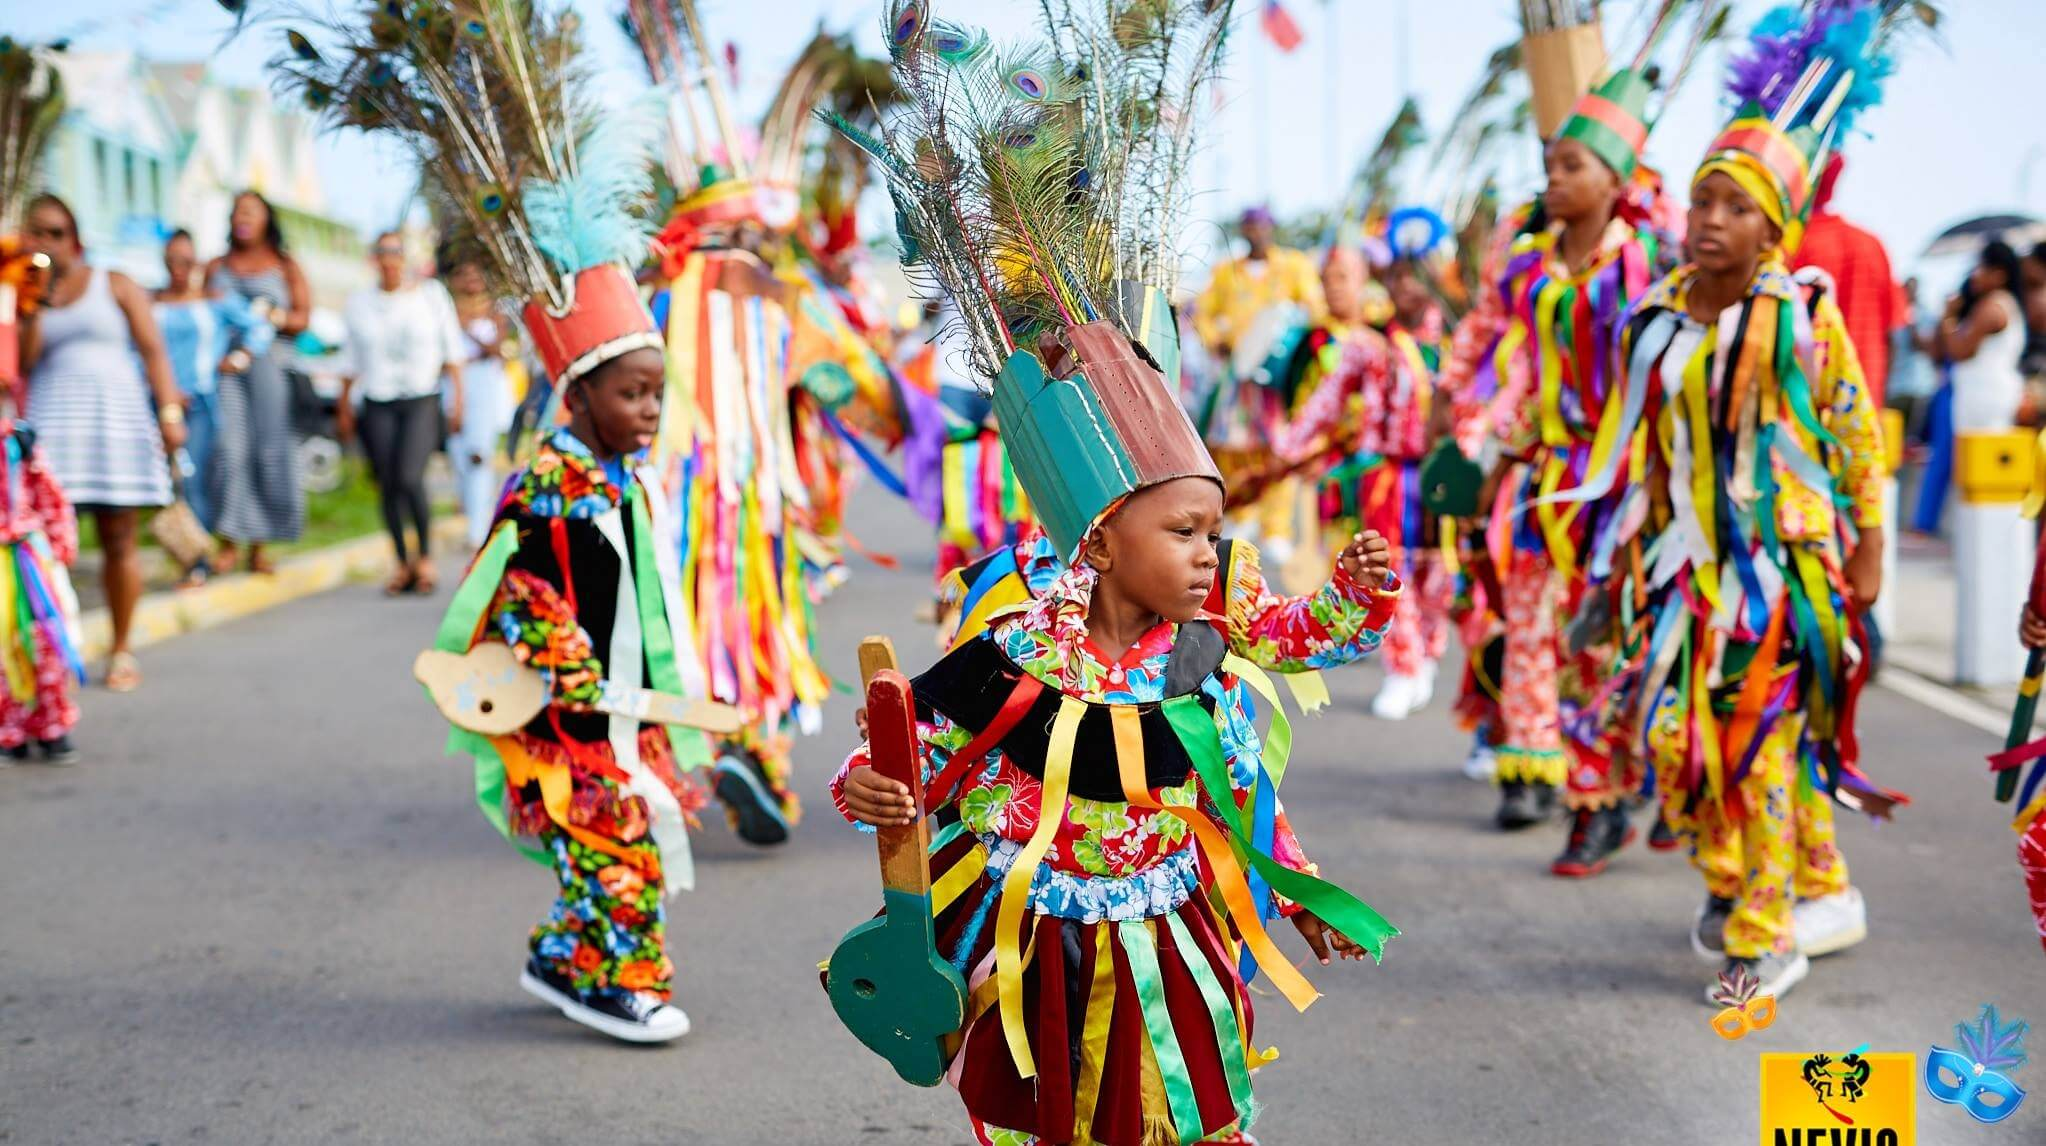 You are currently viewing August 1st & 2nd recognized as public holidays in the federation of St. Kitts and Nevis